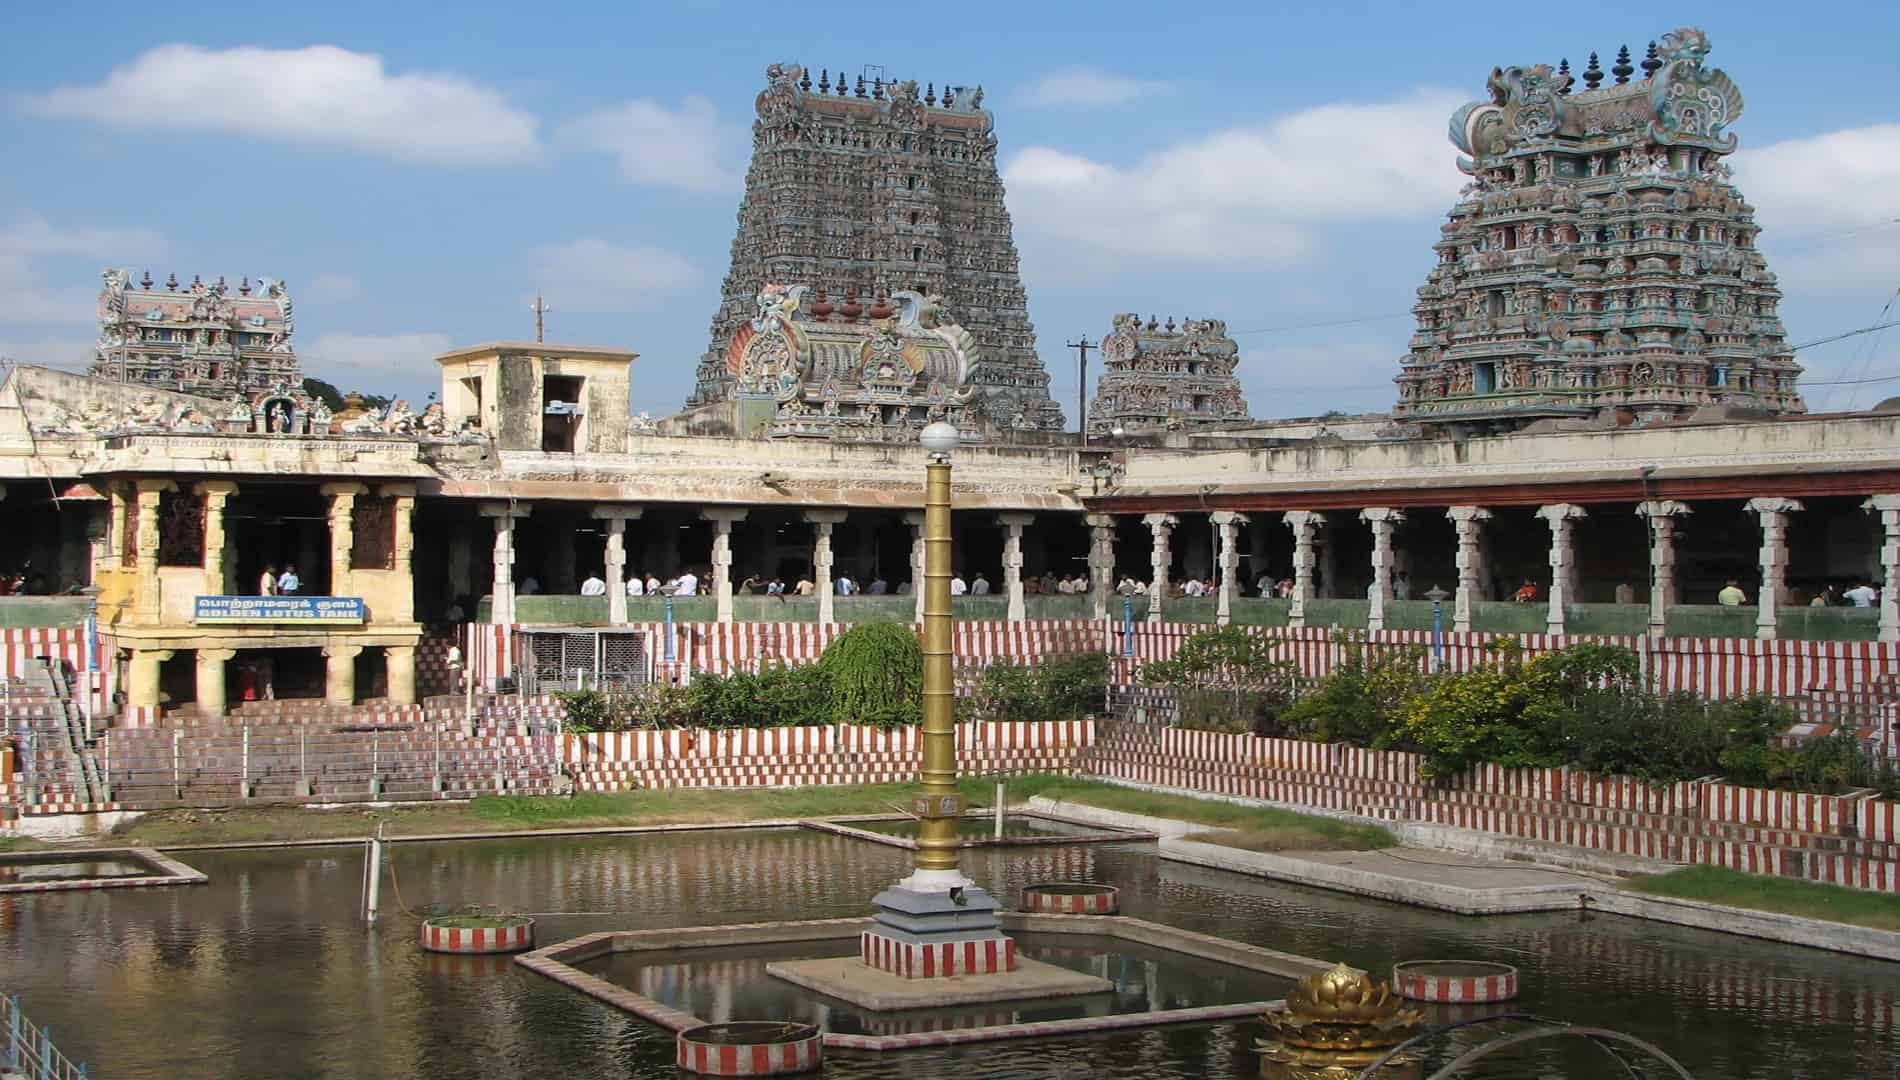 Meenakshi Temple - Madurai Is India's Wealthiest Temples